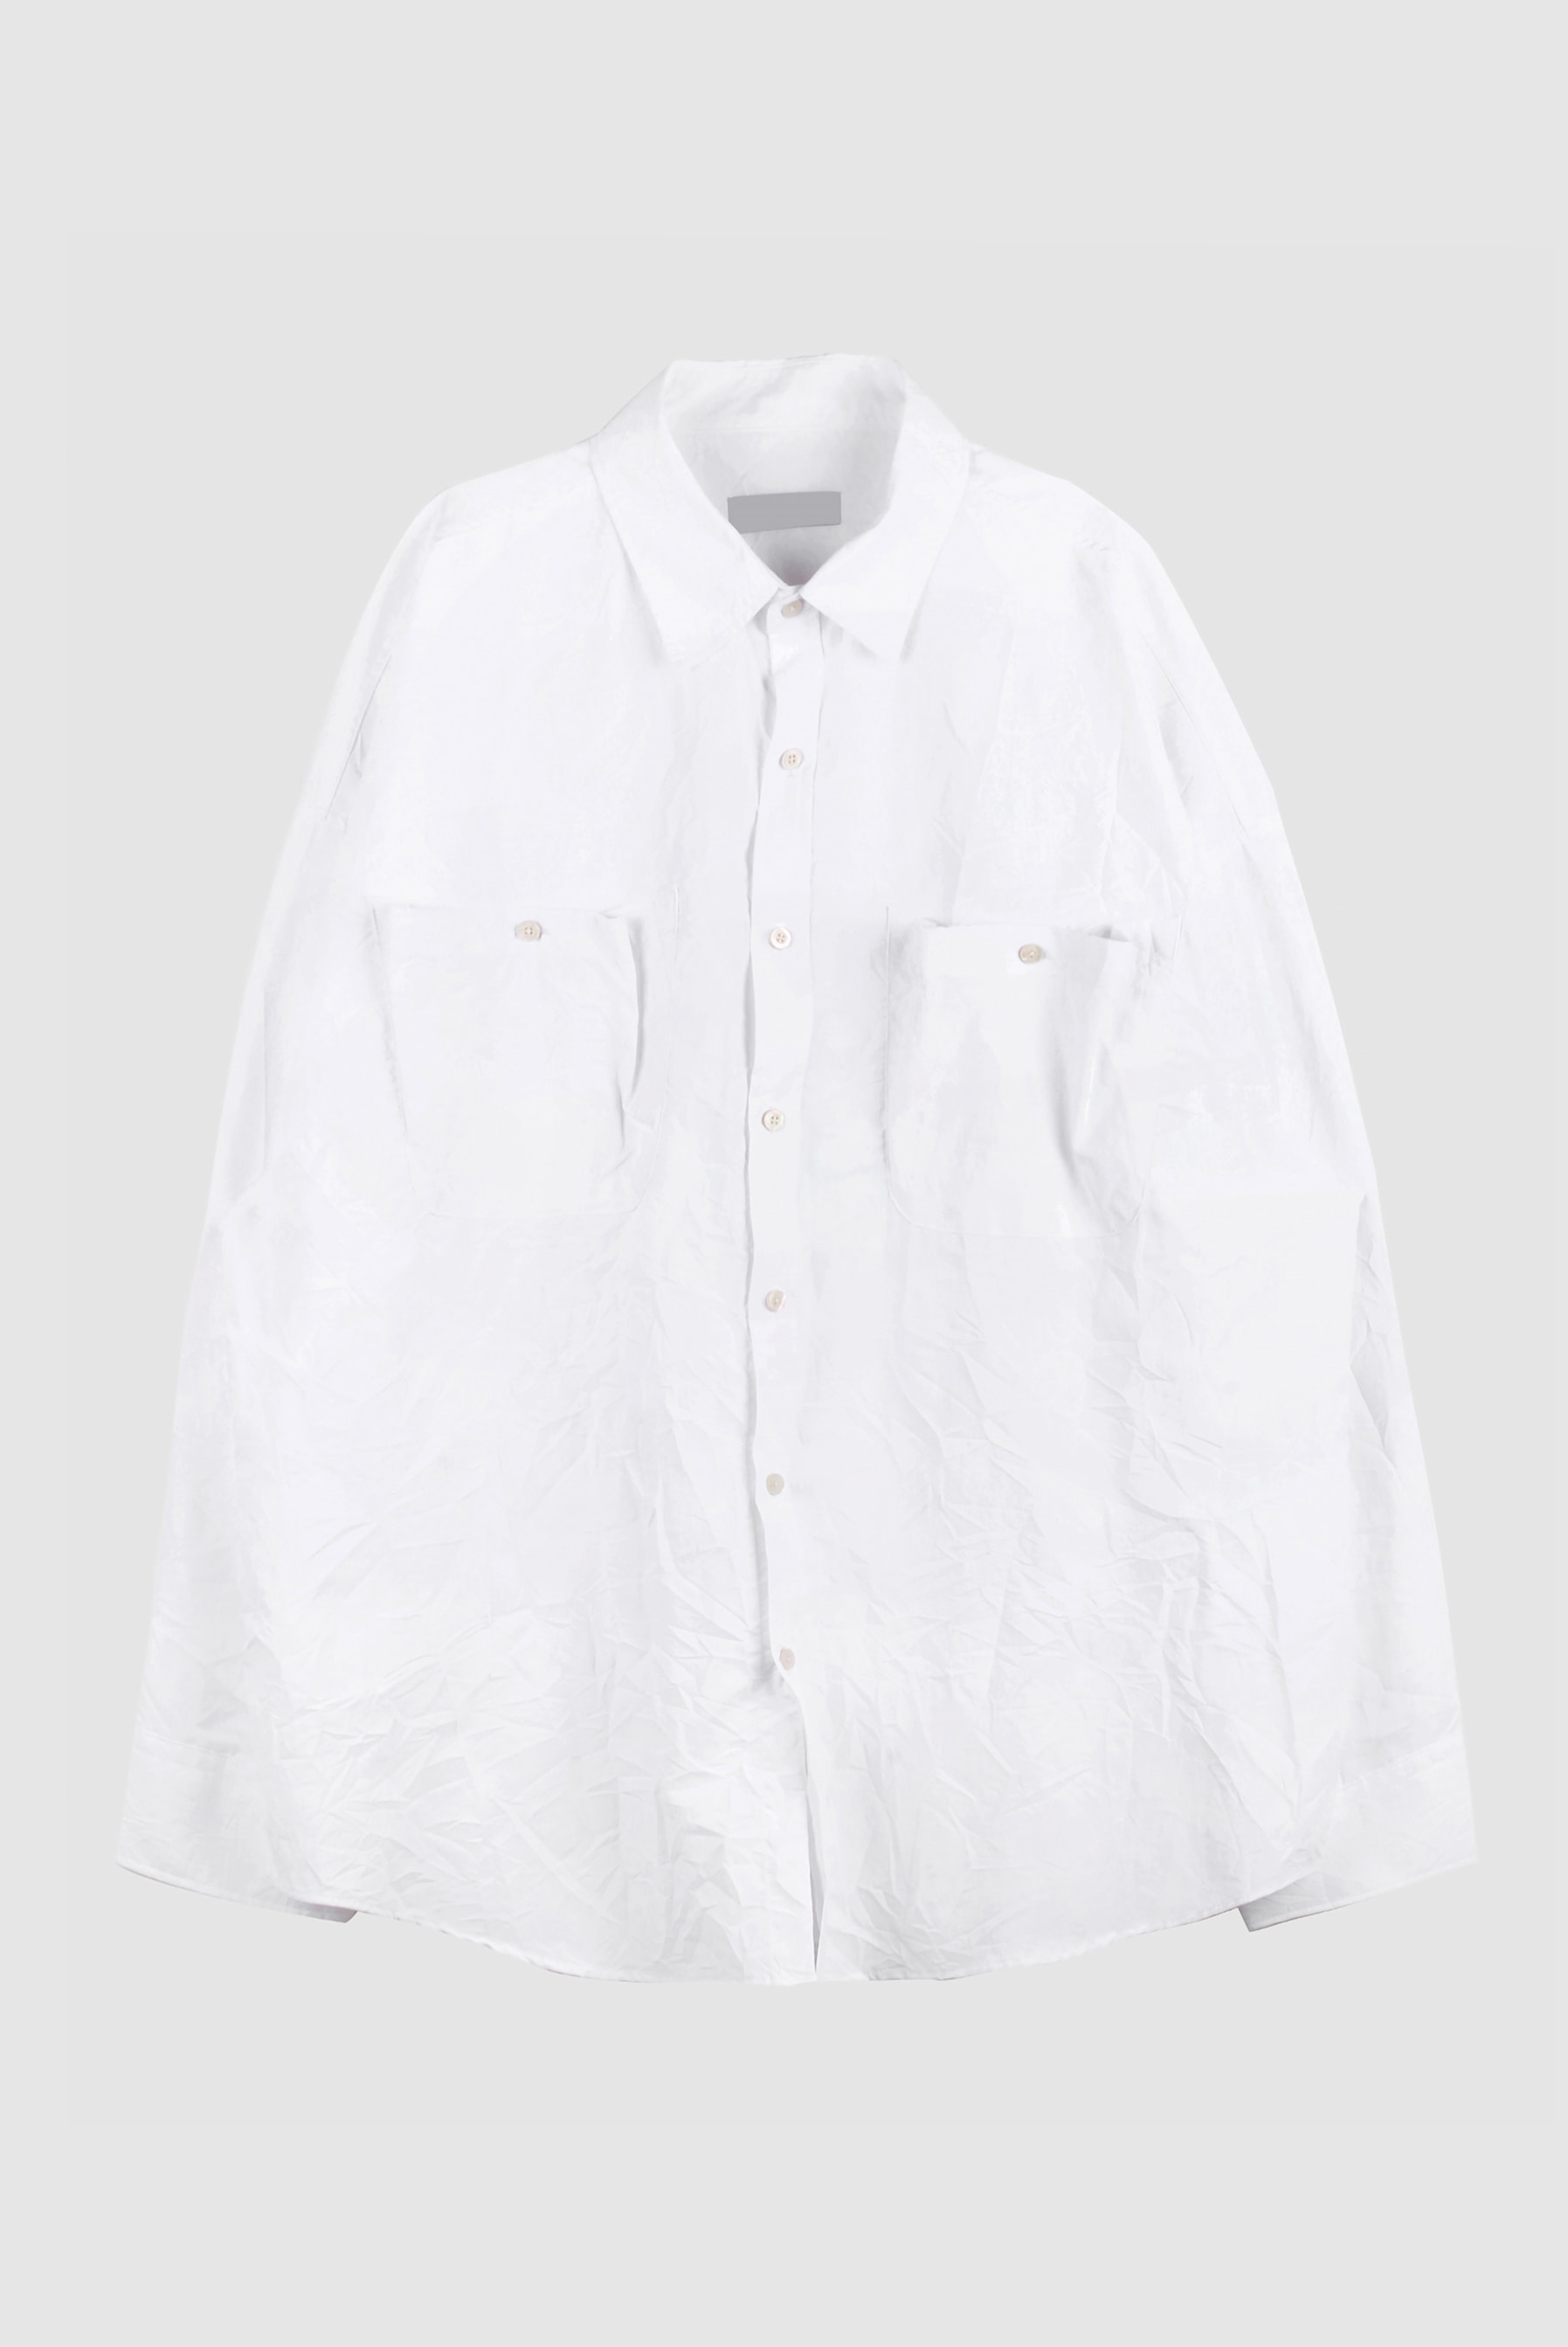 Nylon Wrinkle Over_Shirt